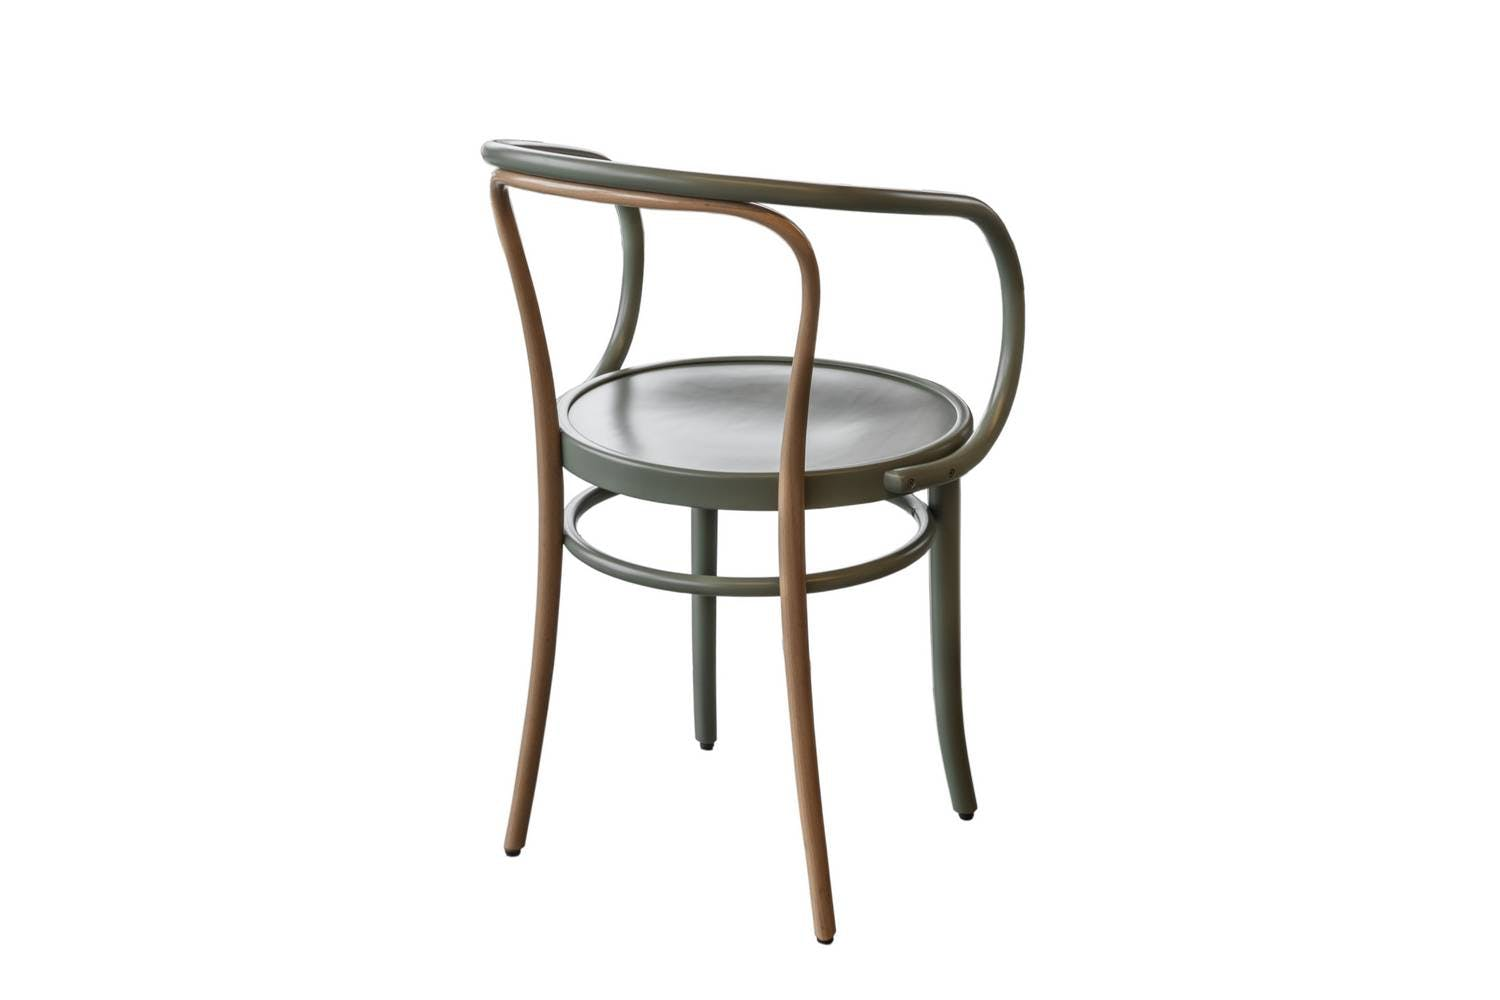 Wiener stuhl chair by august thonet for gebruder thonet for Stuhl design thonet